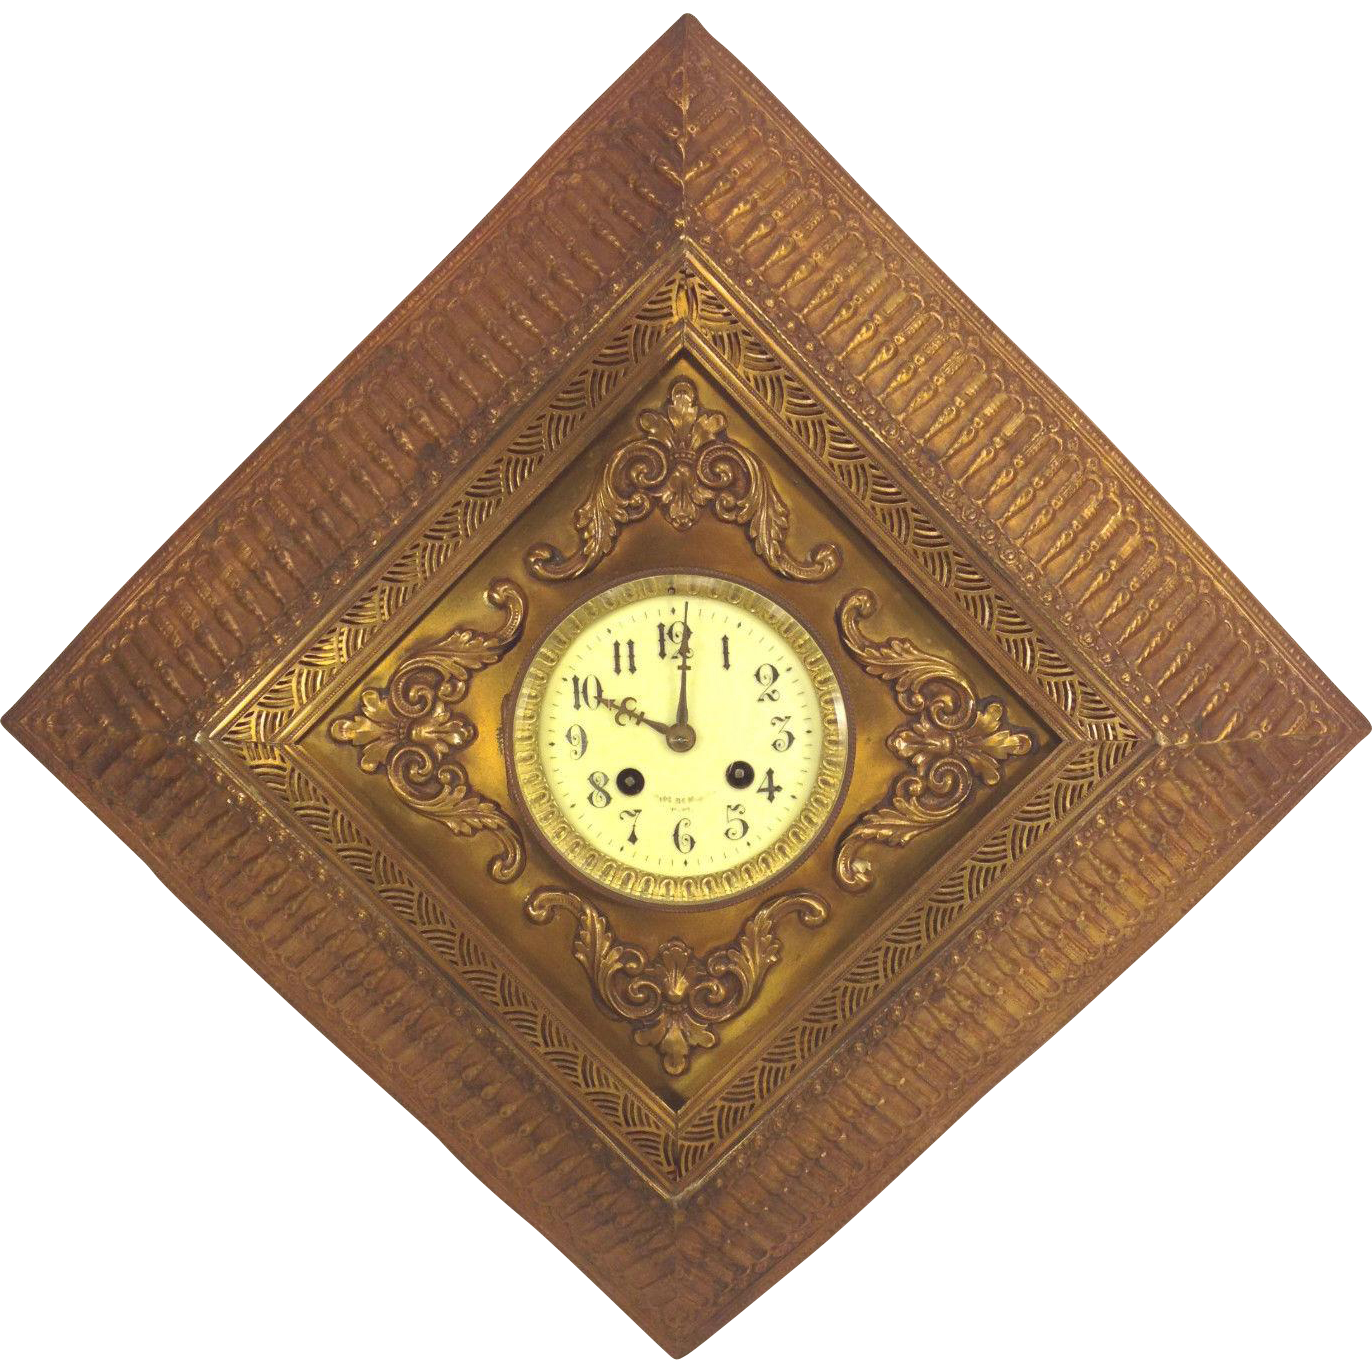 antique paris jeweler wall clock gold colored tin case. Black Bedroom Furniture Sets. Home Design Ideas